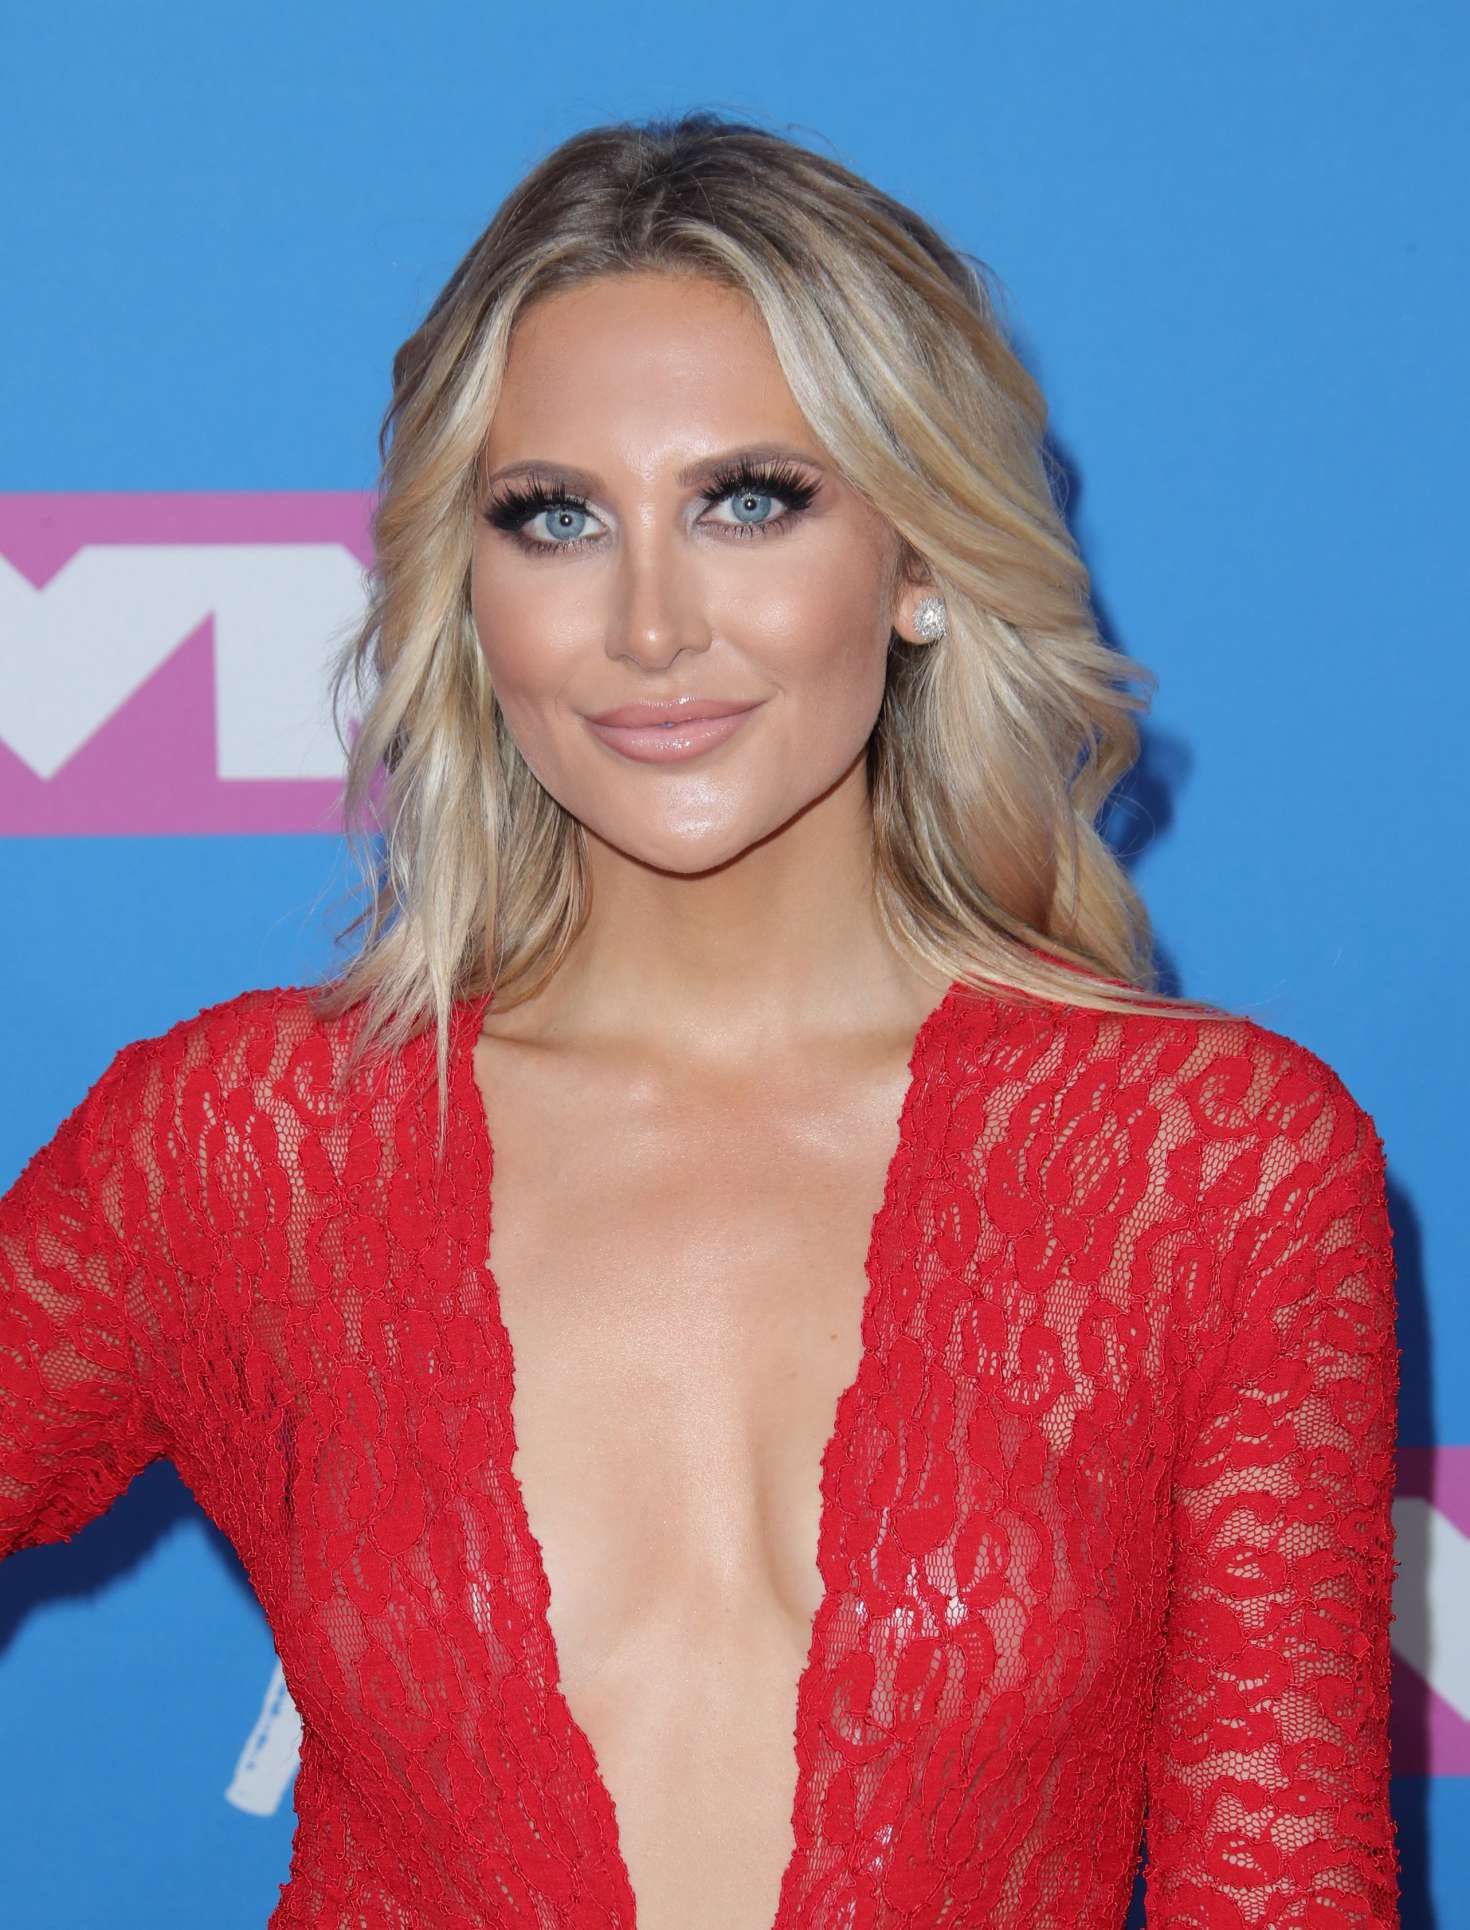 Video Stephanie Pratt nude photos 2019